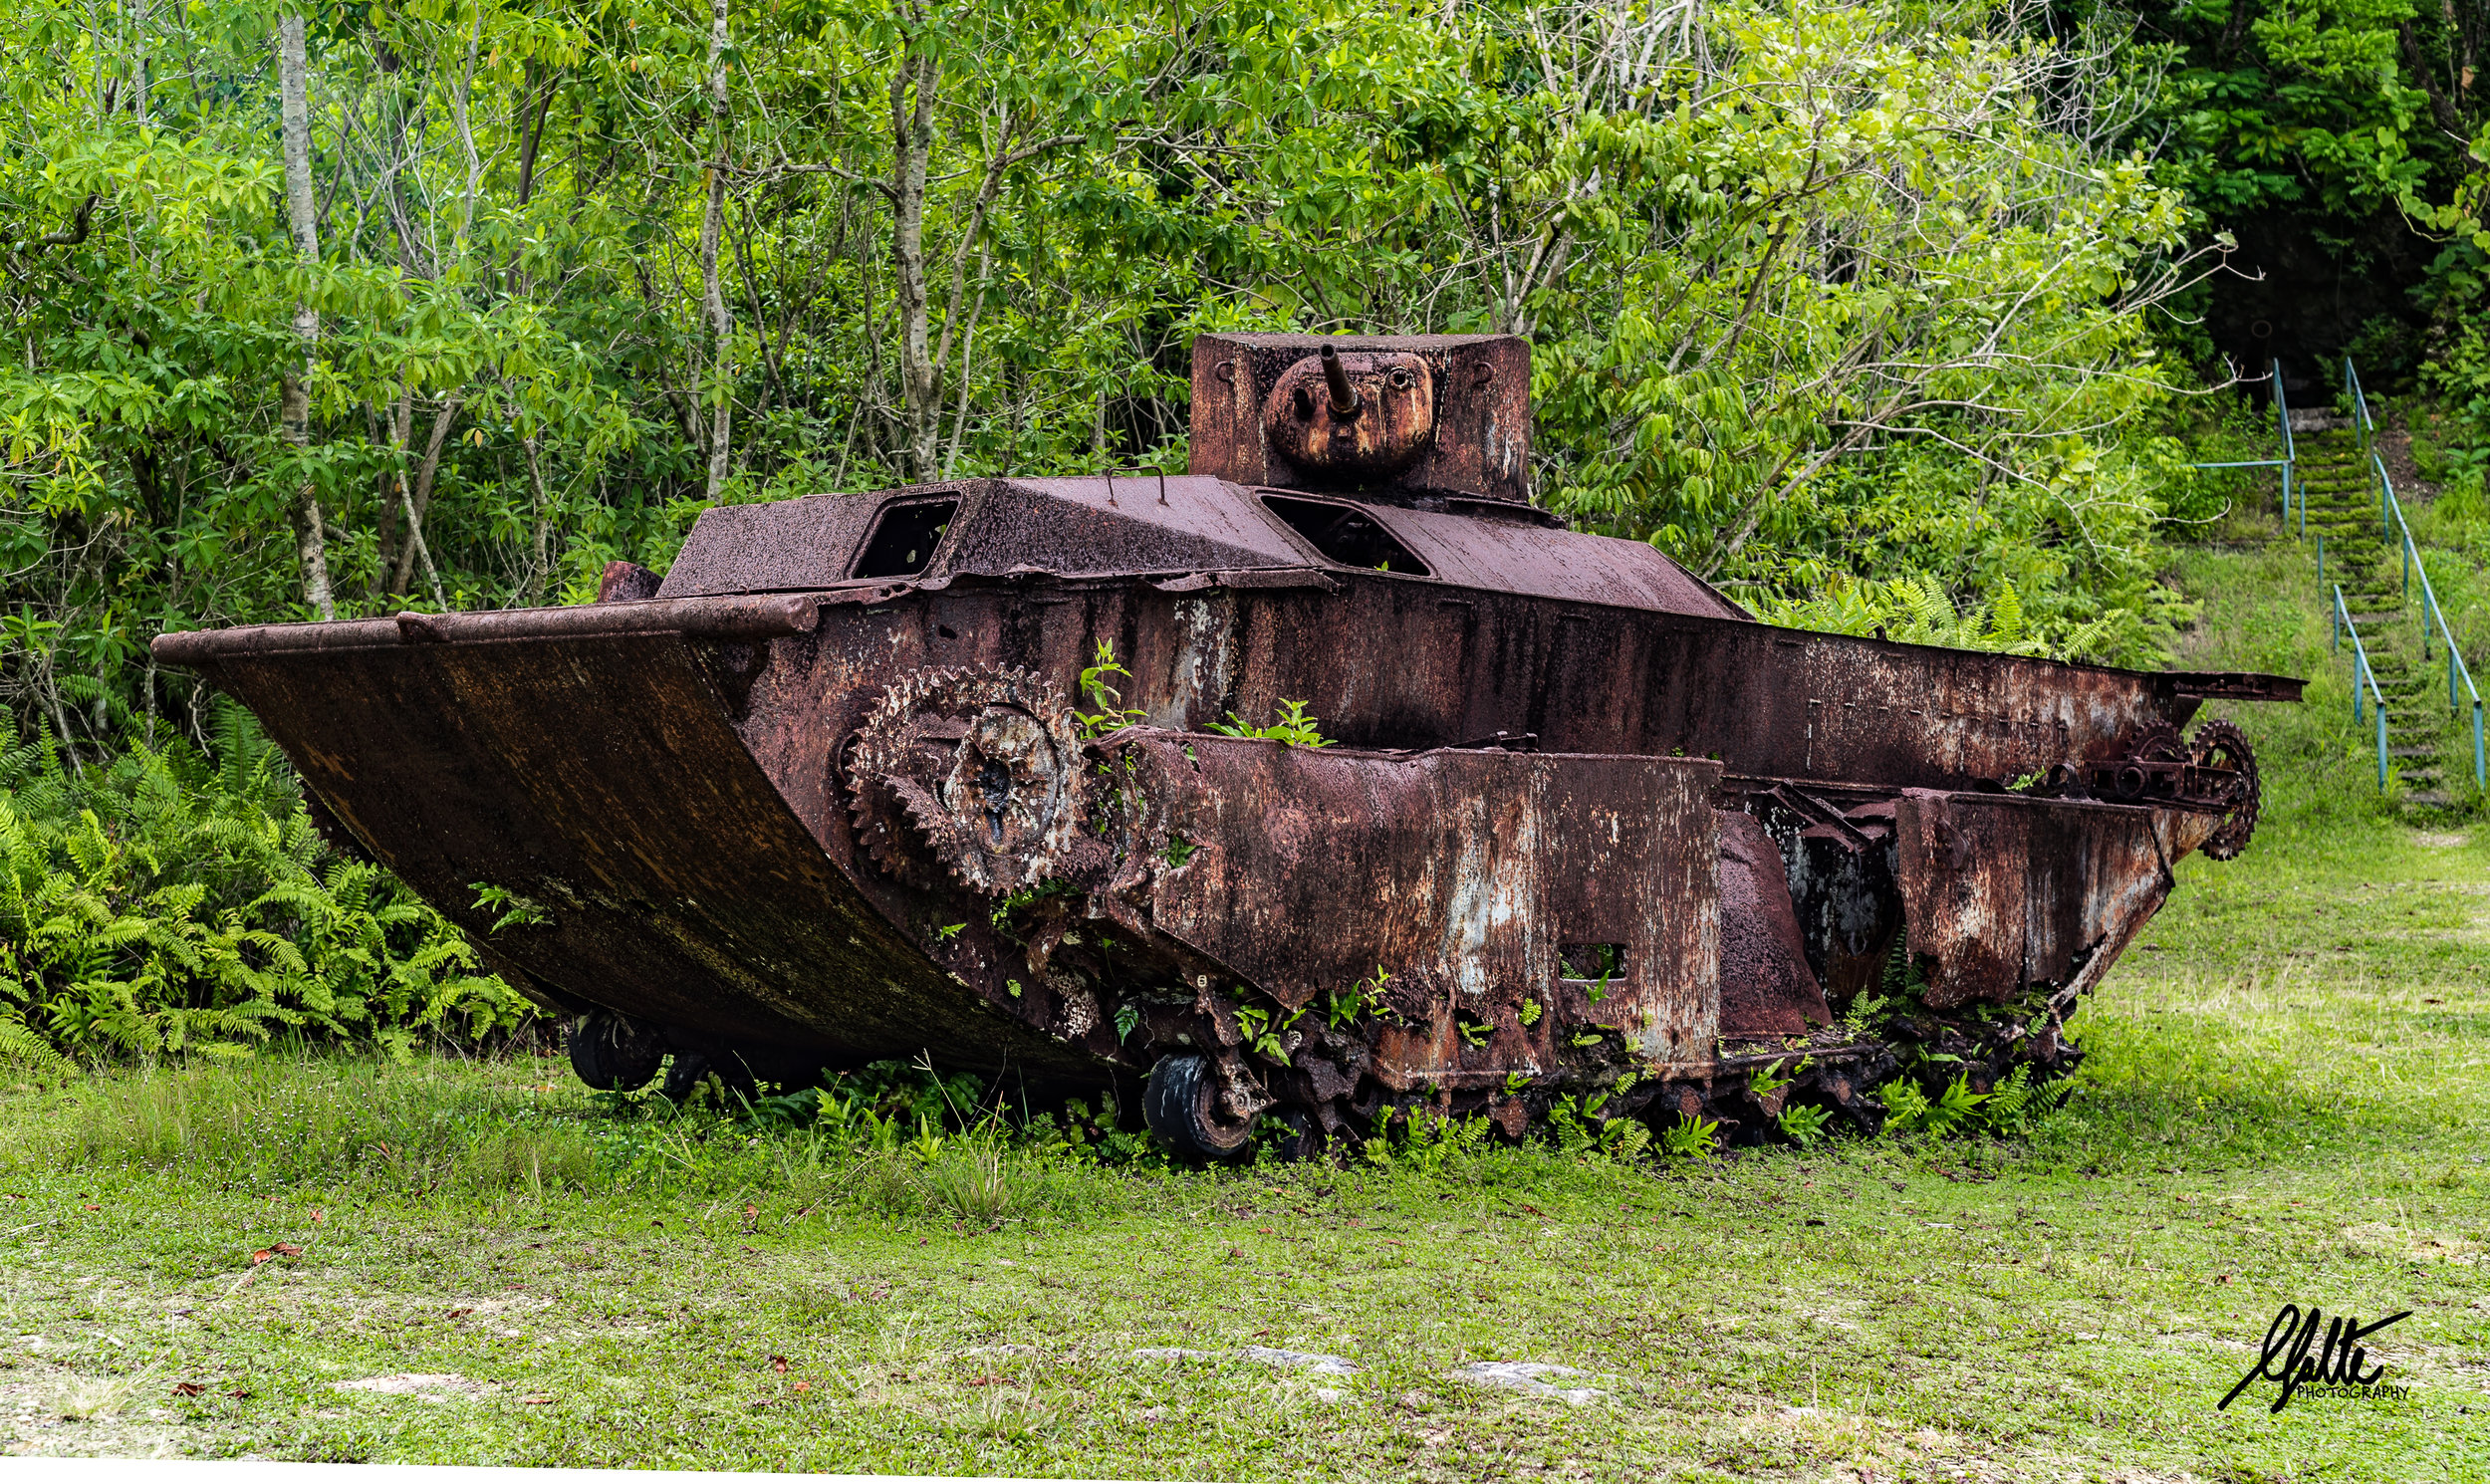 The Marines landed in these sorts of vehicles called LVT (Landing Vehicle Tracked) which were able to simply run over the reef that protected the beach (You can see it on the left in the previous picture). Yet the Japanese were able to destroy 60 of them on the first day.